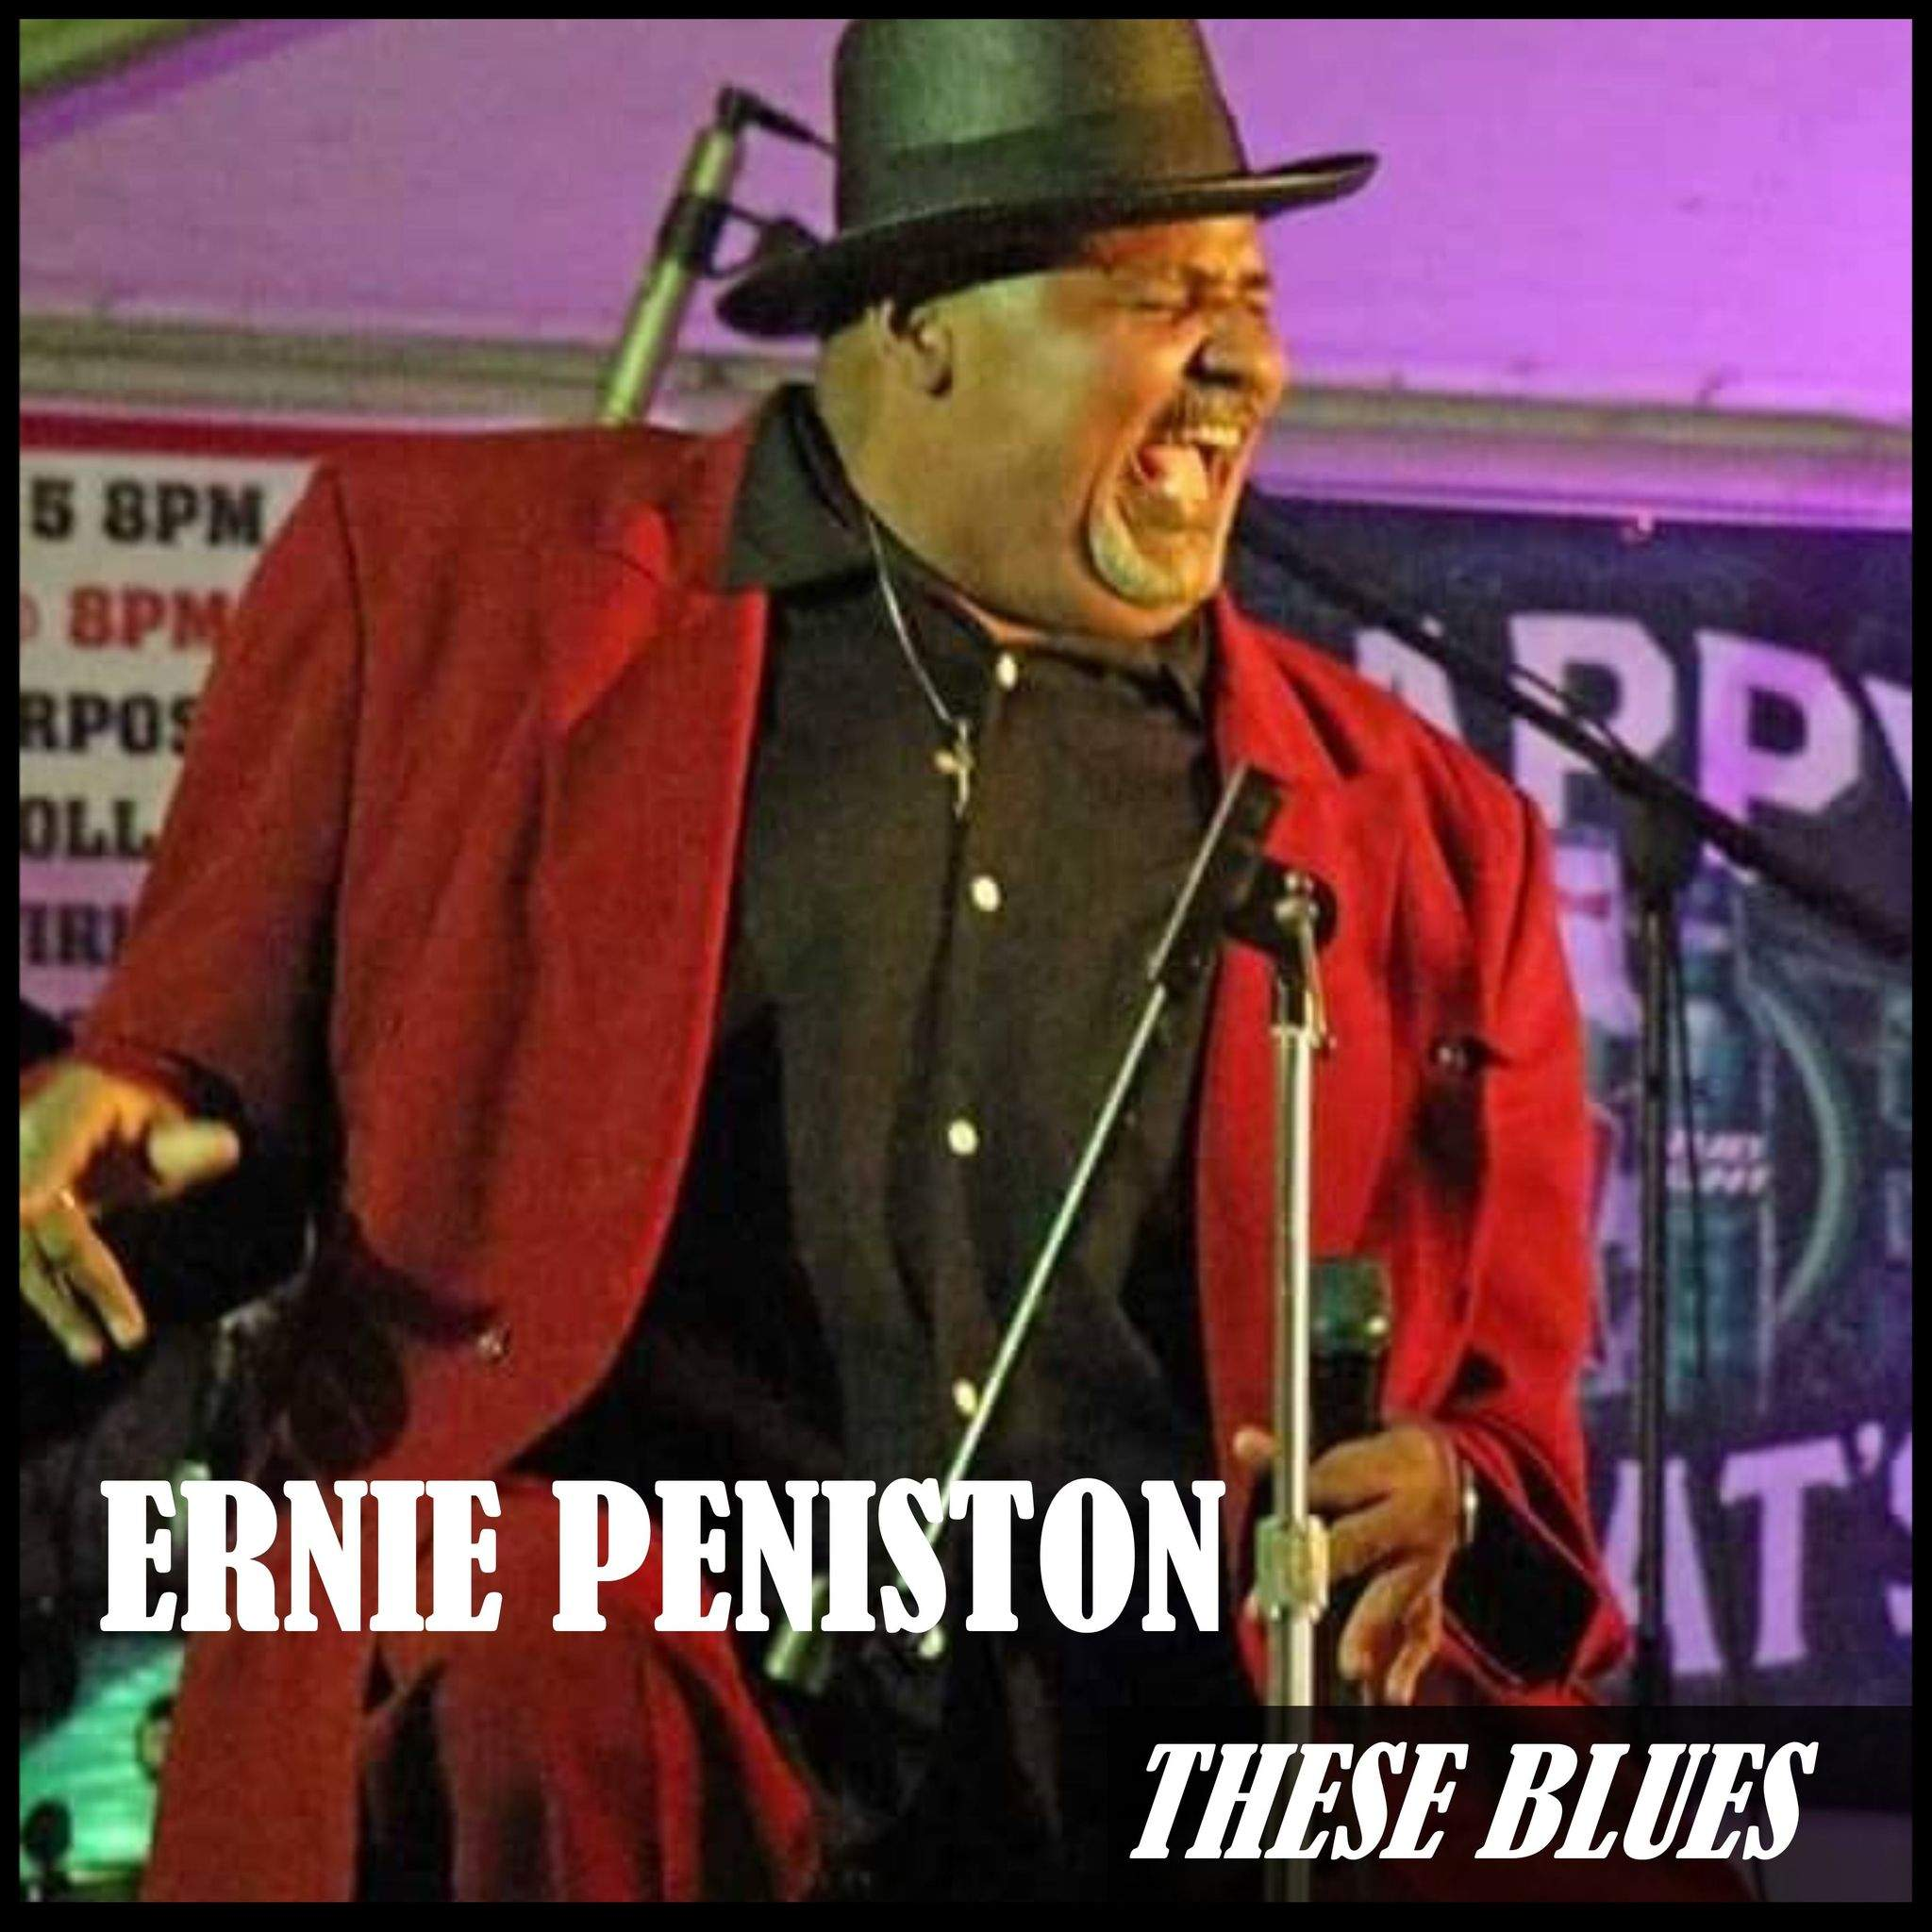 """New Album """"These Blues"""" from Ernie Peniston is a Funky Blues Masterpiece & Shares a Black Lowegian's Perspective on Life and Love"""